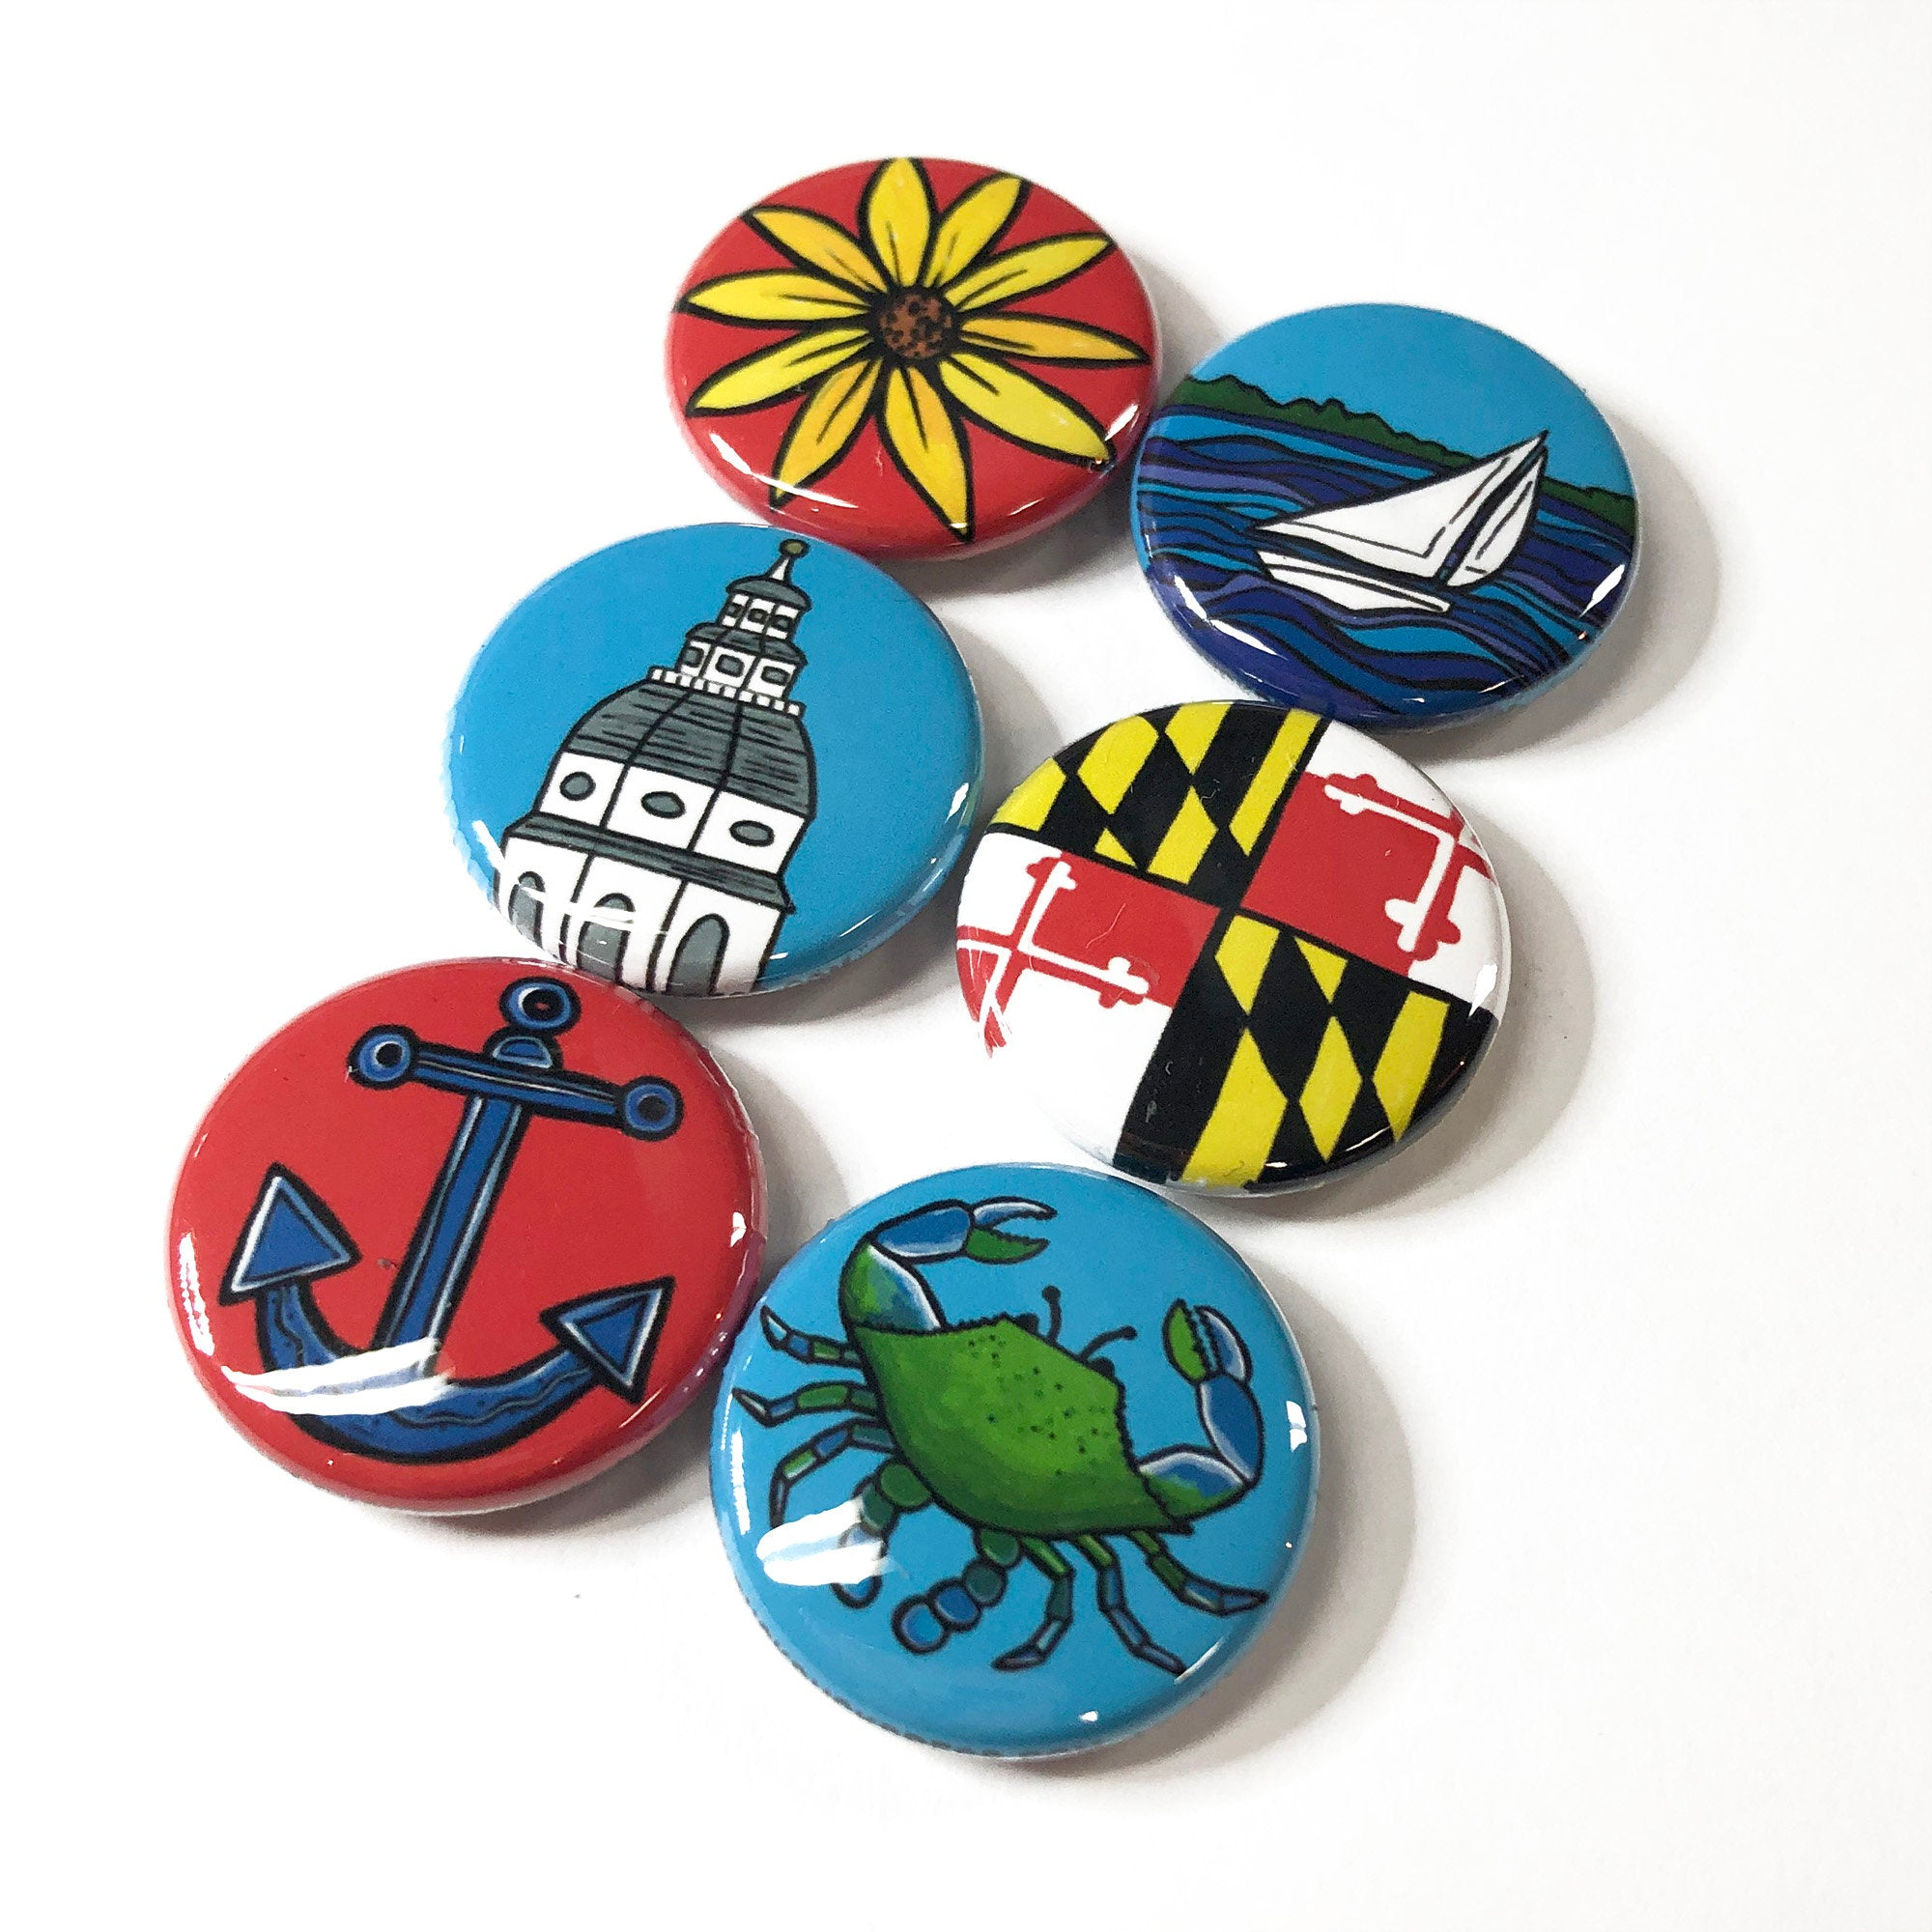 Maryland Magnets or Pins - State House, Flag, Blue Crab, Sailboat, Black Eyed Susan, Anchor, Chesapeake Bay